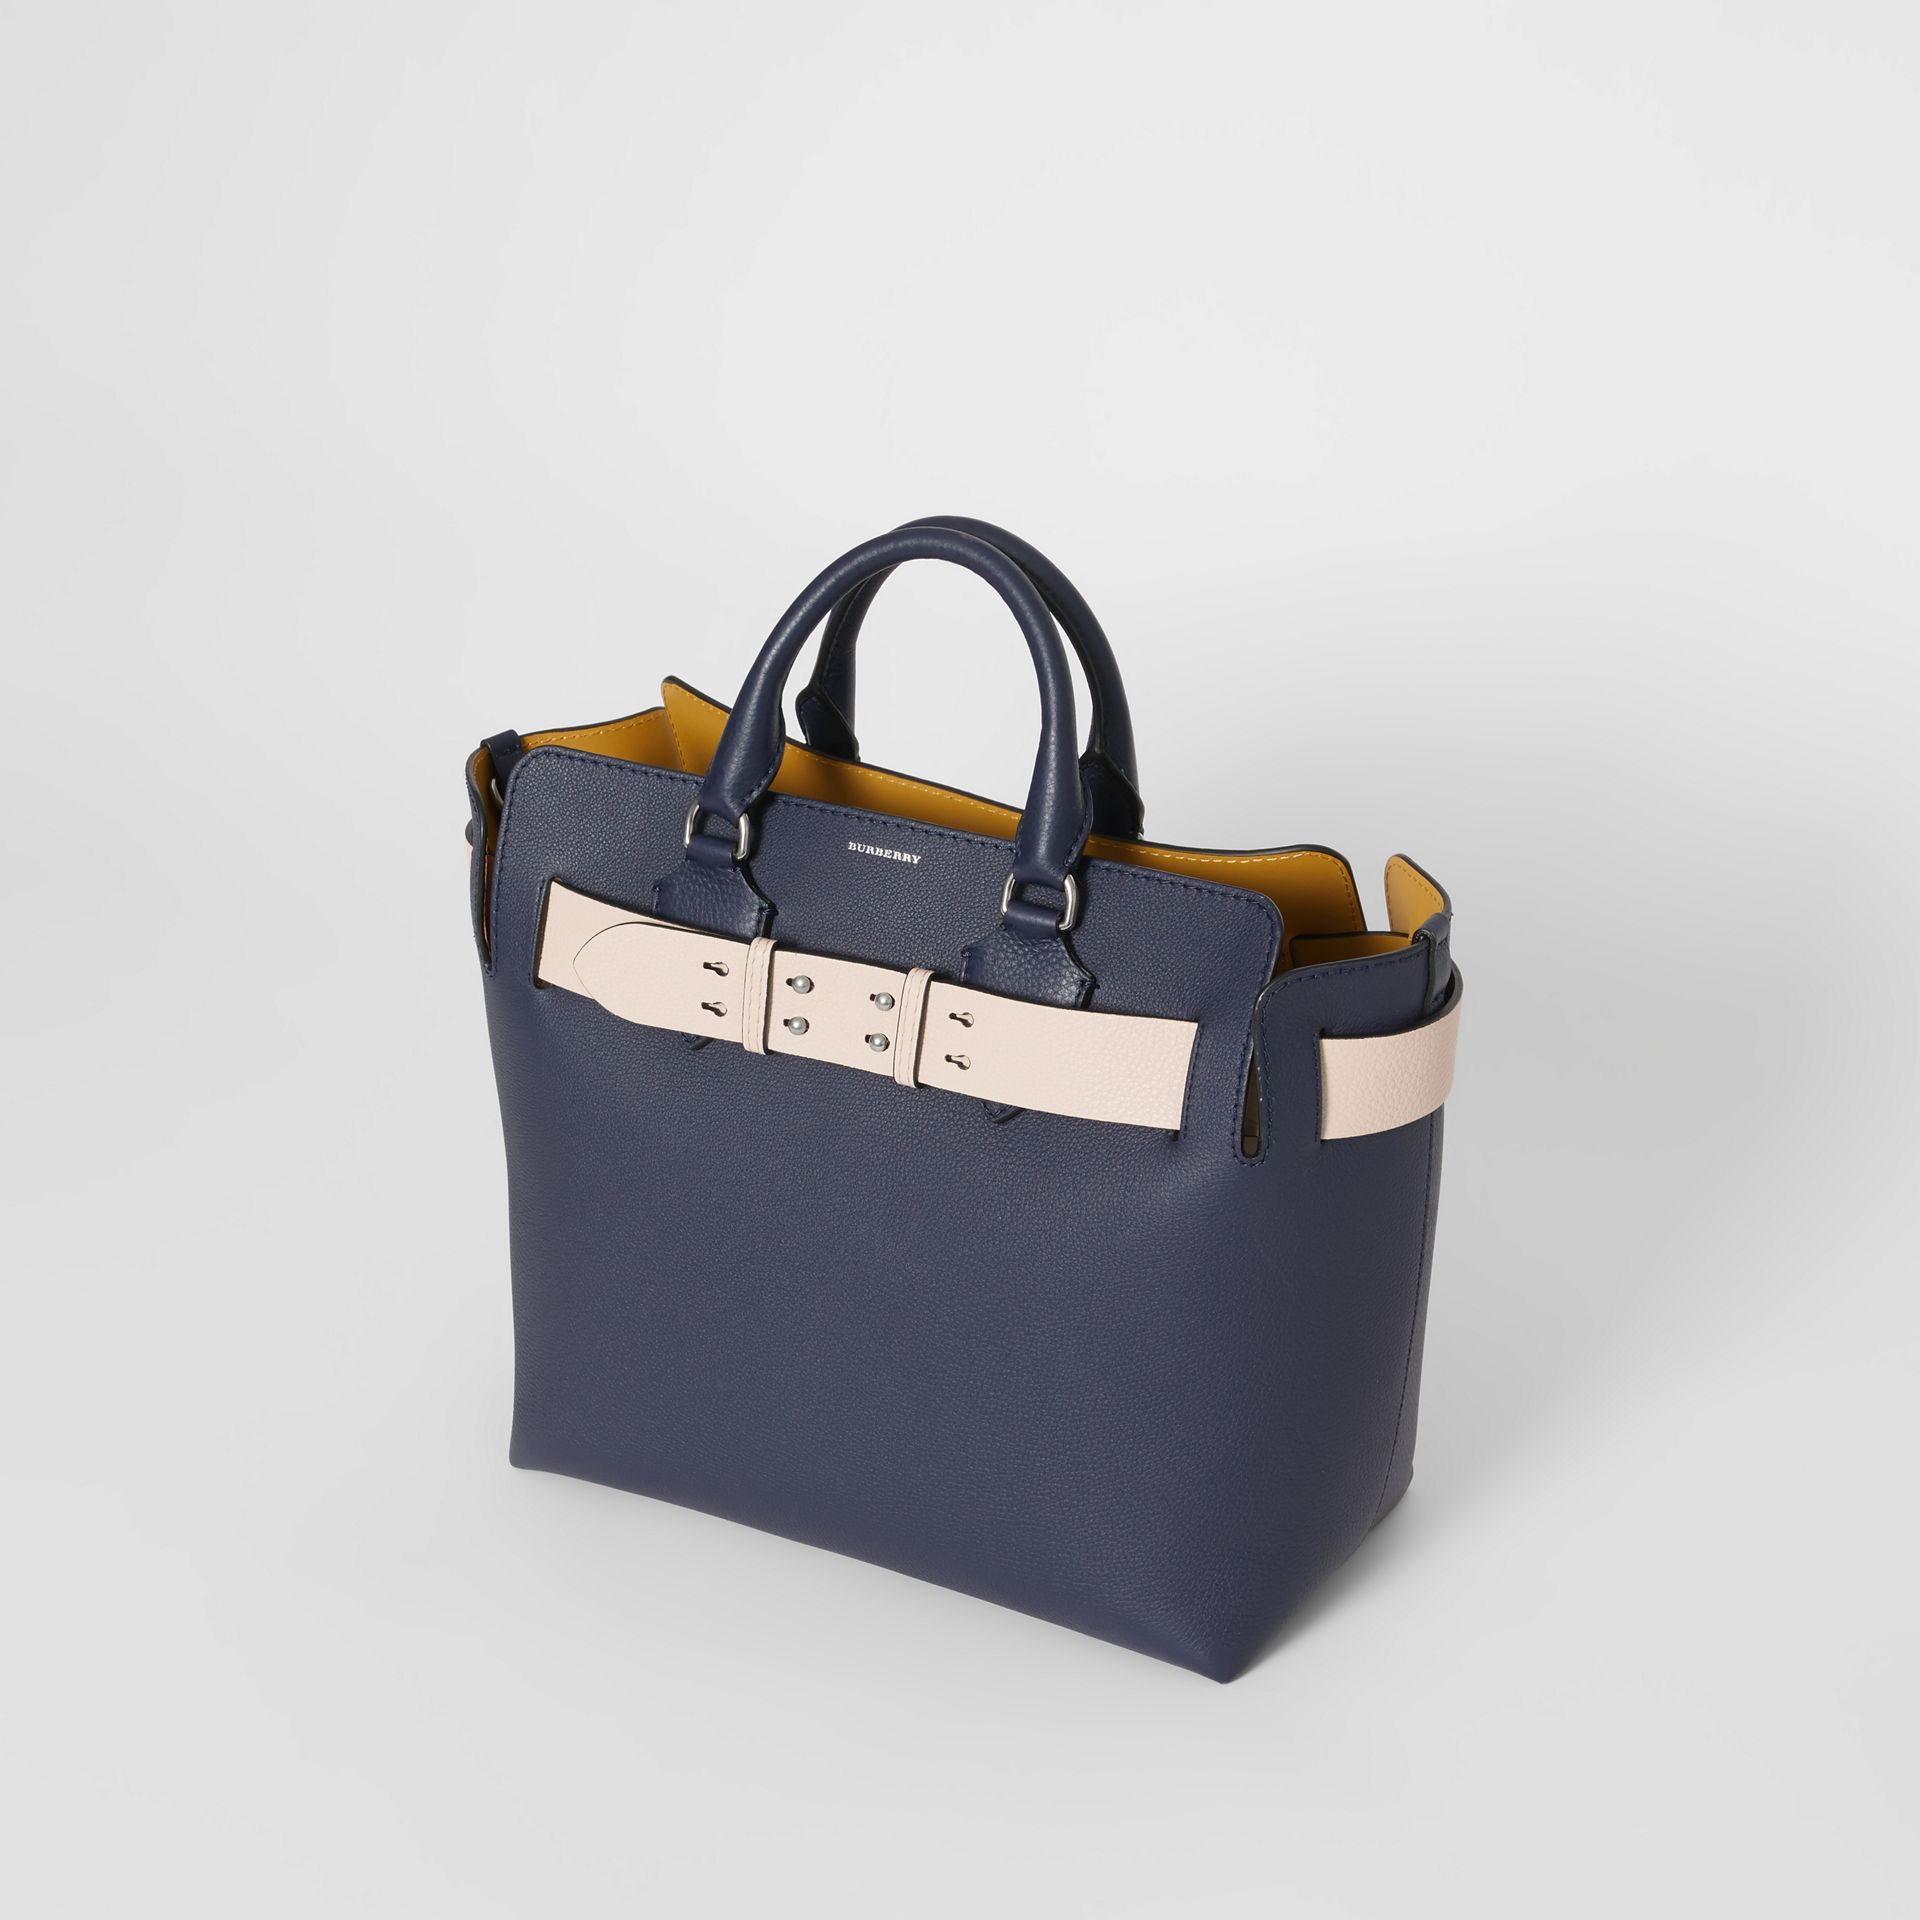 Sac The Belt moyen en cuir (Bleu Régence) - Femme | Burberry - photo de la galerie 4